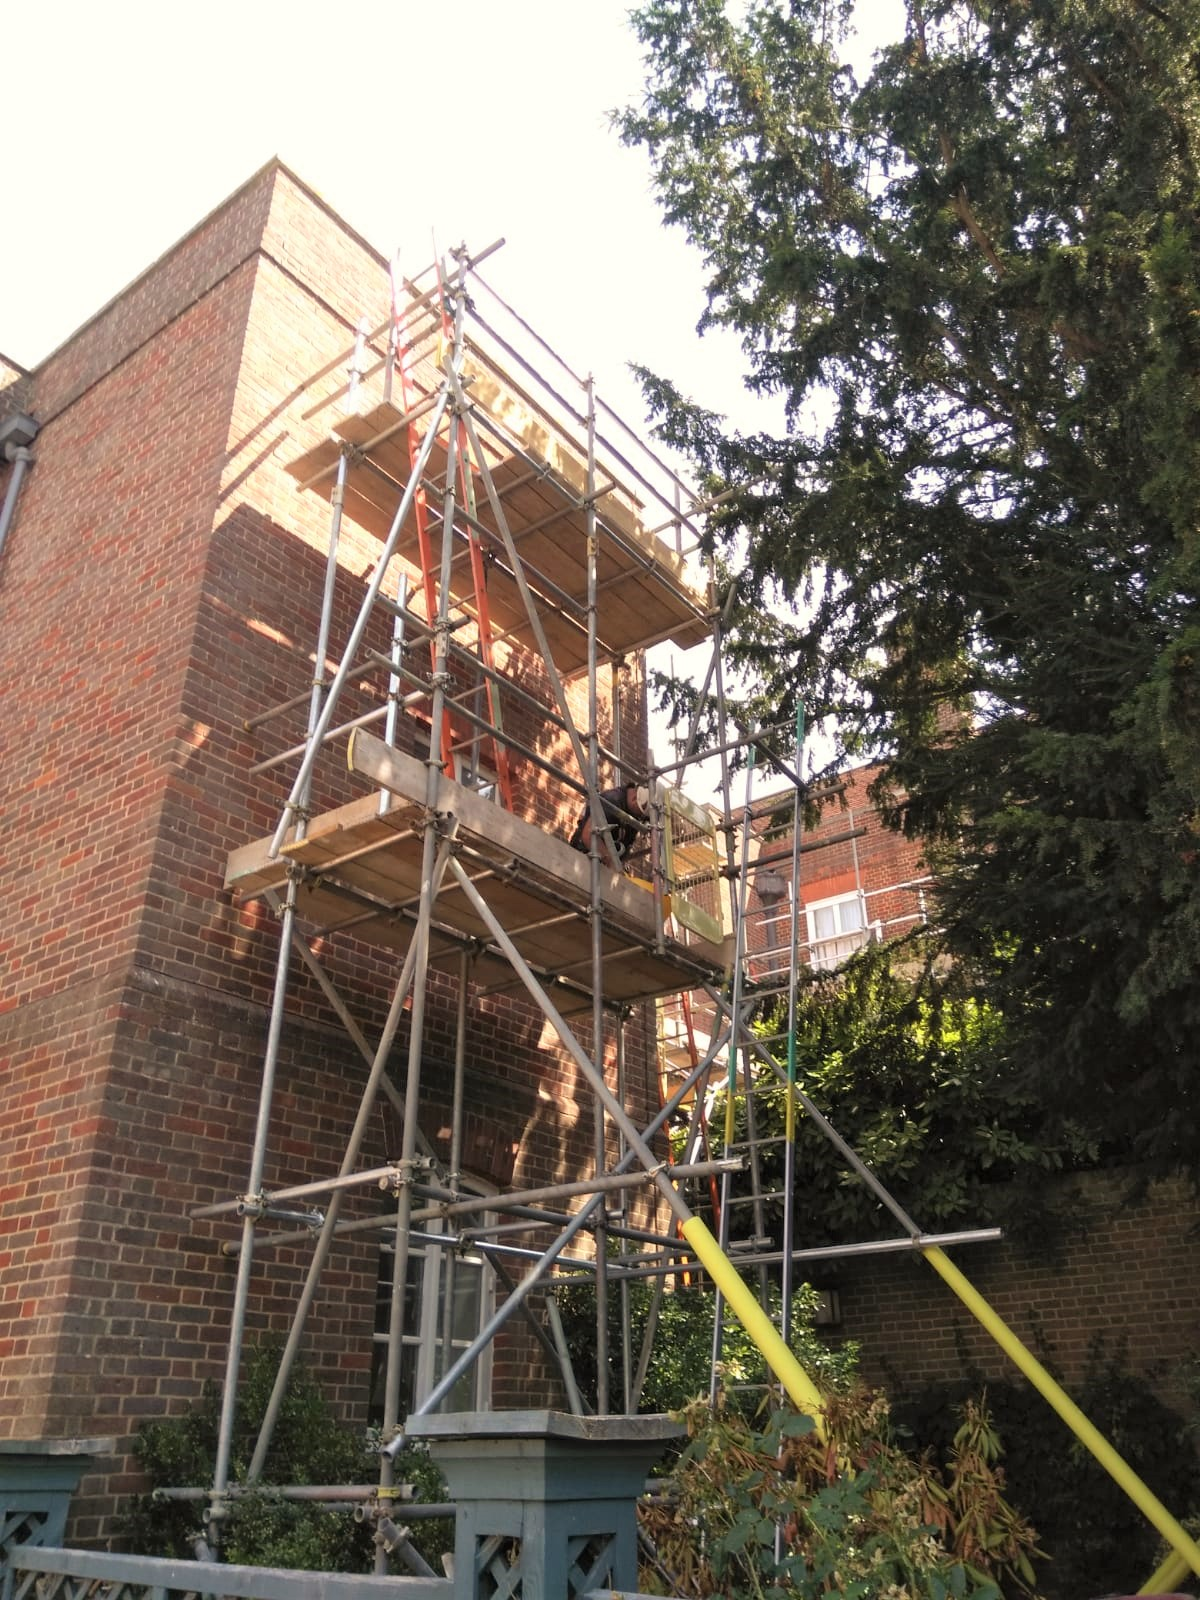 Royston-Scaffolding-projects-30.jpeg